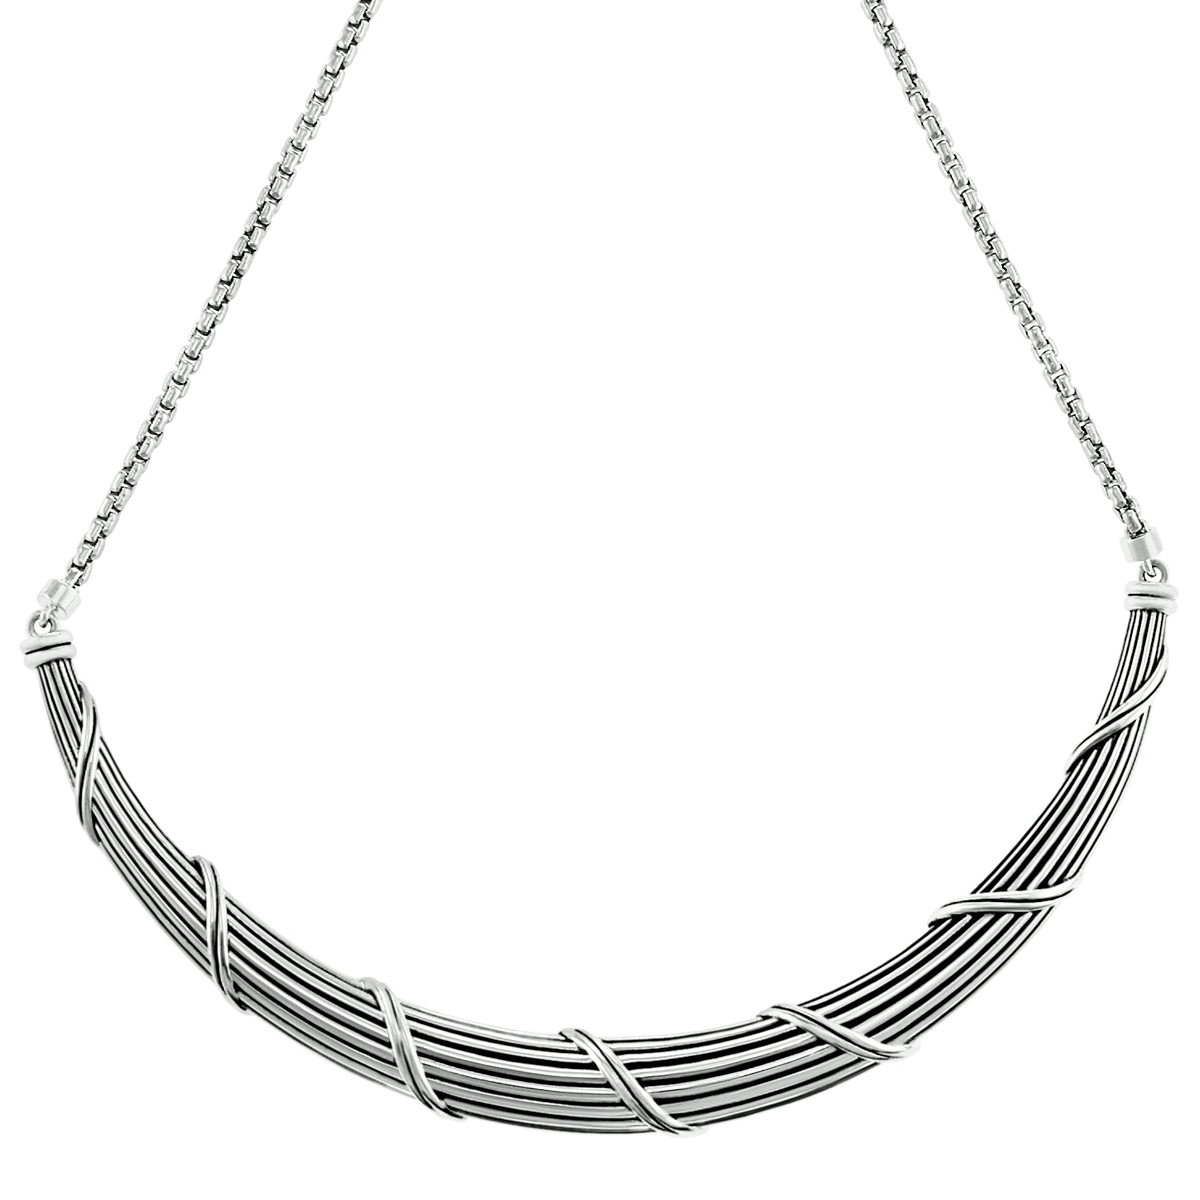 Signature Classic Collar Necklace in sterling silver